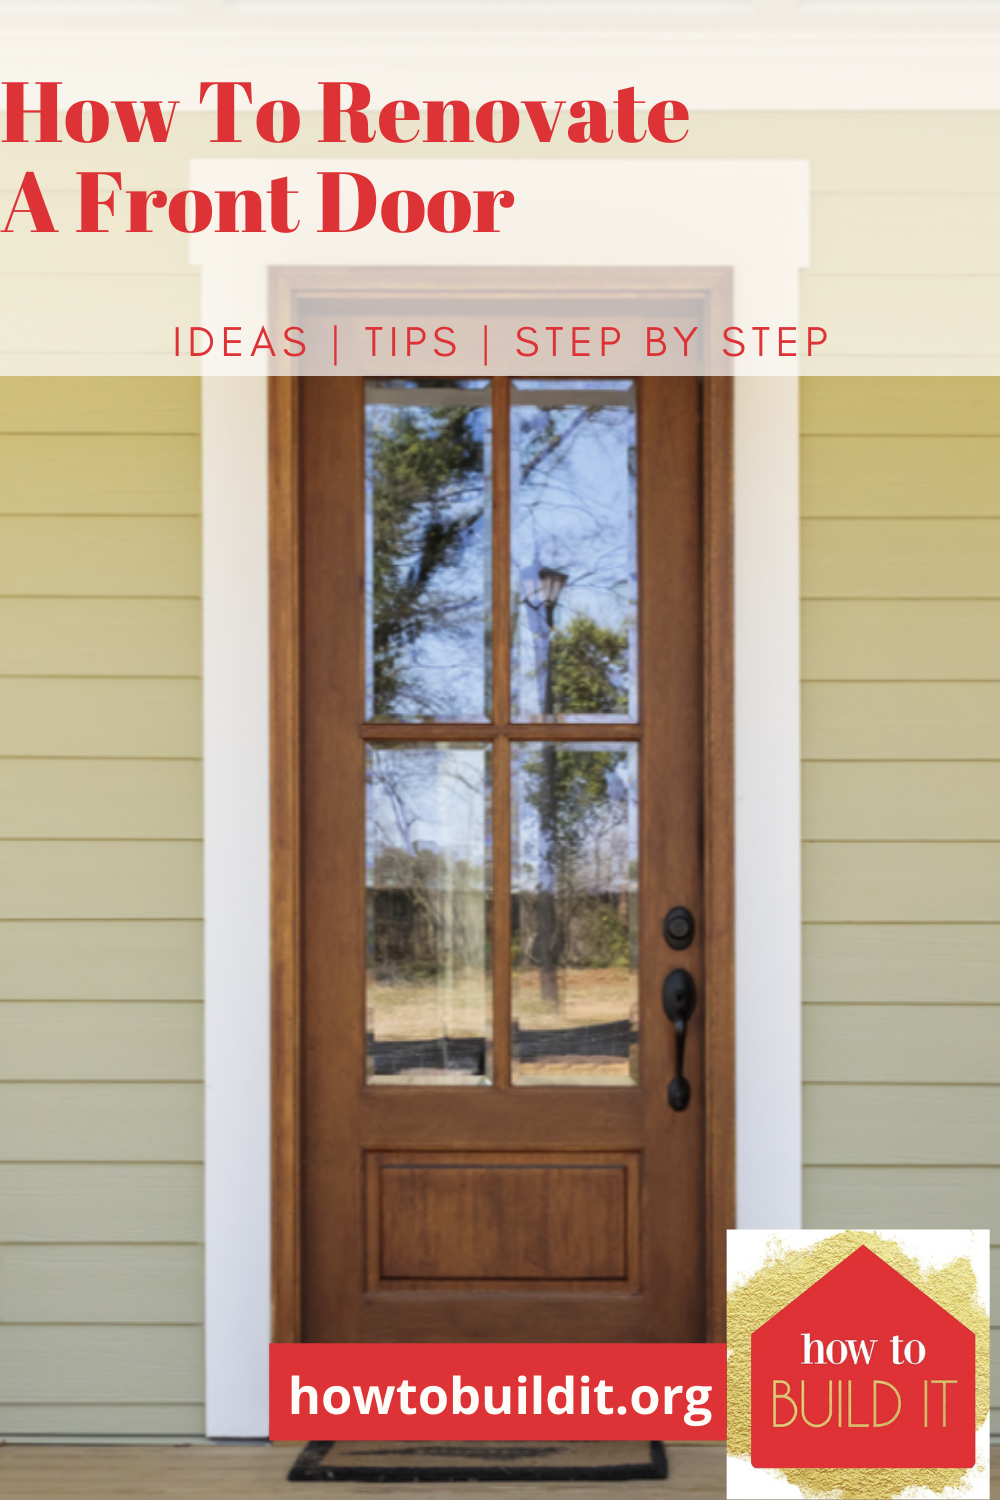 Your front door says a lot about your home. Make sure it is saying the right things by giving it an upgrade with one of these easy ideas. These DIY projects are great for beginners! #home #howto #howtobuilditblog